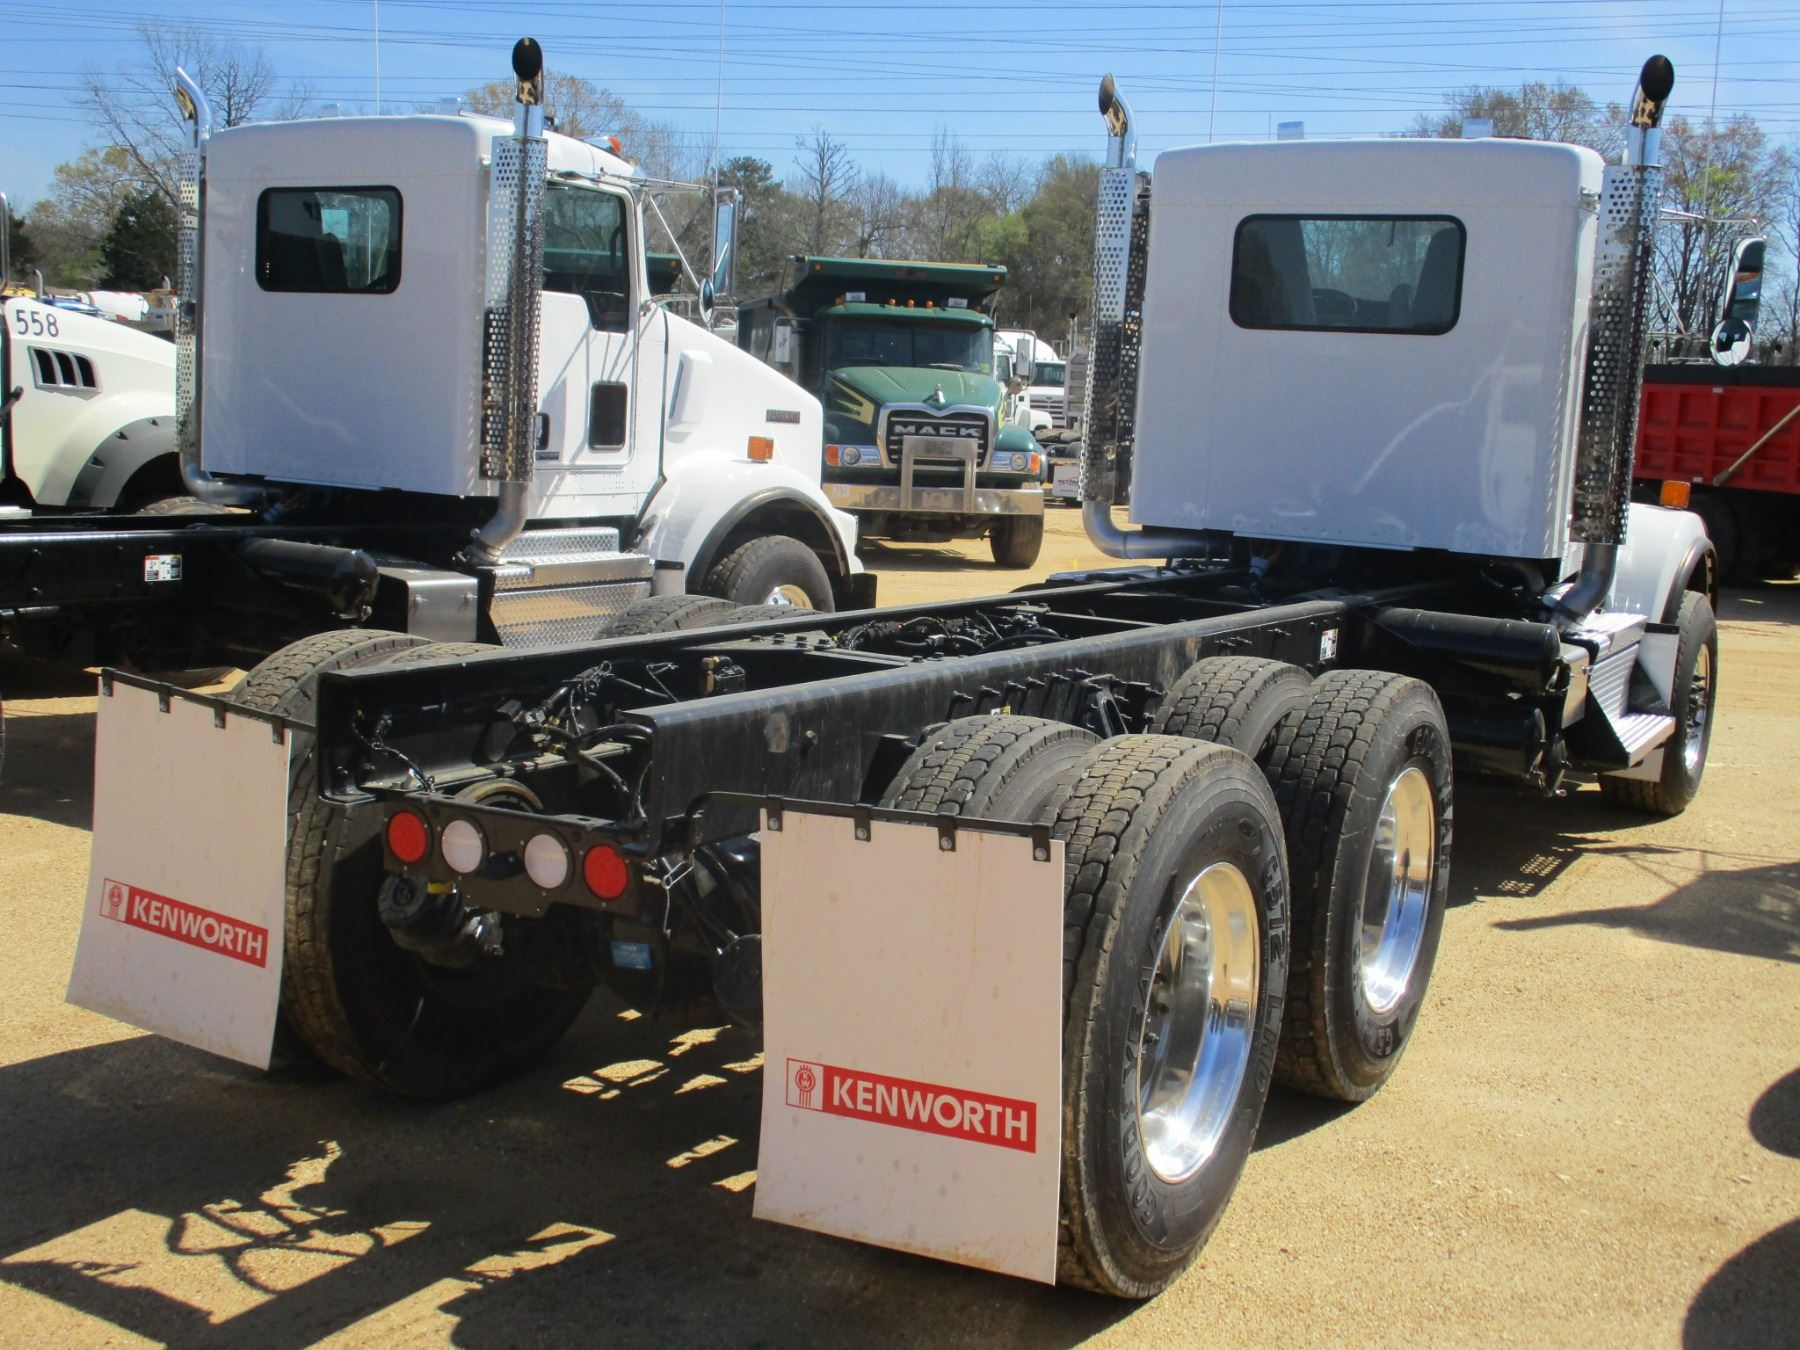 hight resolution of  image 3 2018 kenworth t800 cab chassis vin sn 1nkdl40x6jj205443